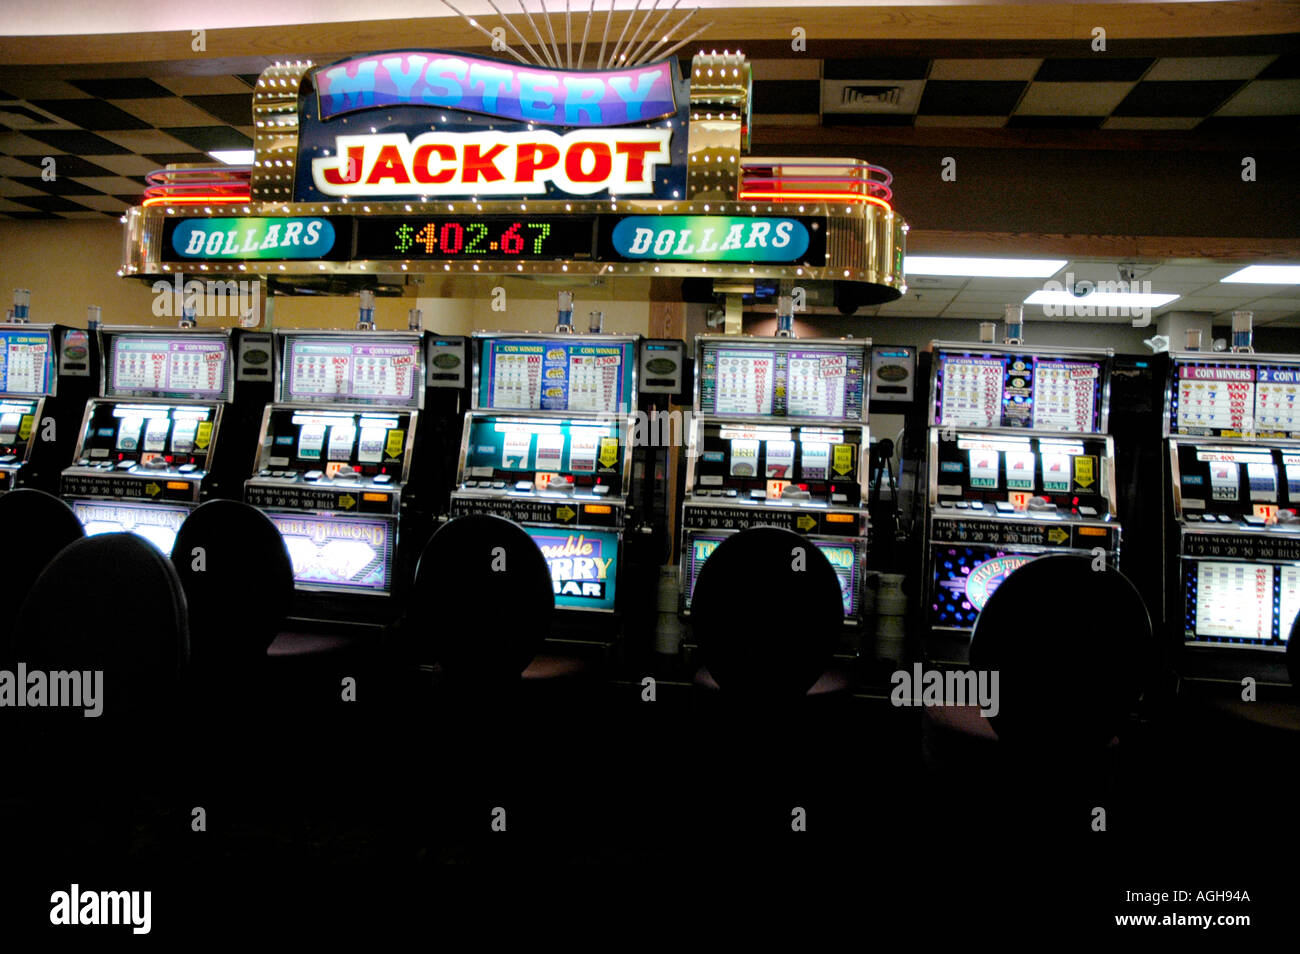 Baymills casino mi slot machines for sale